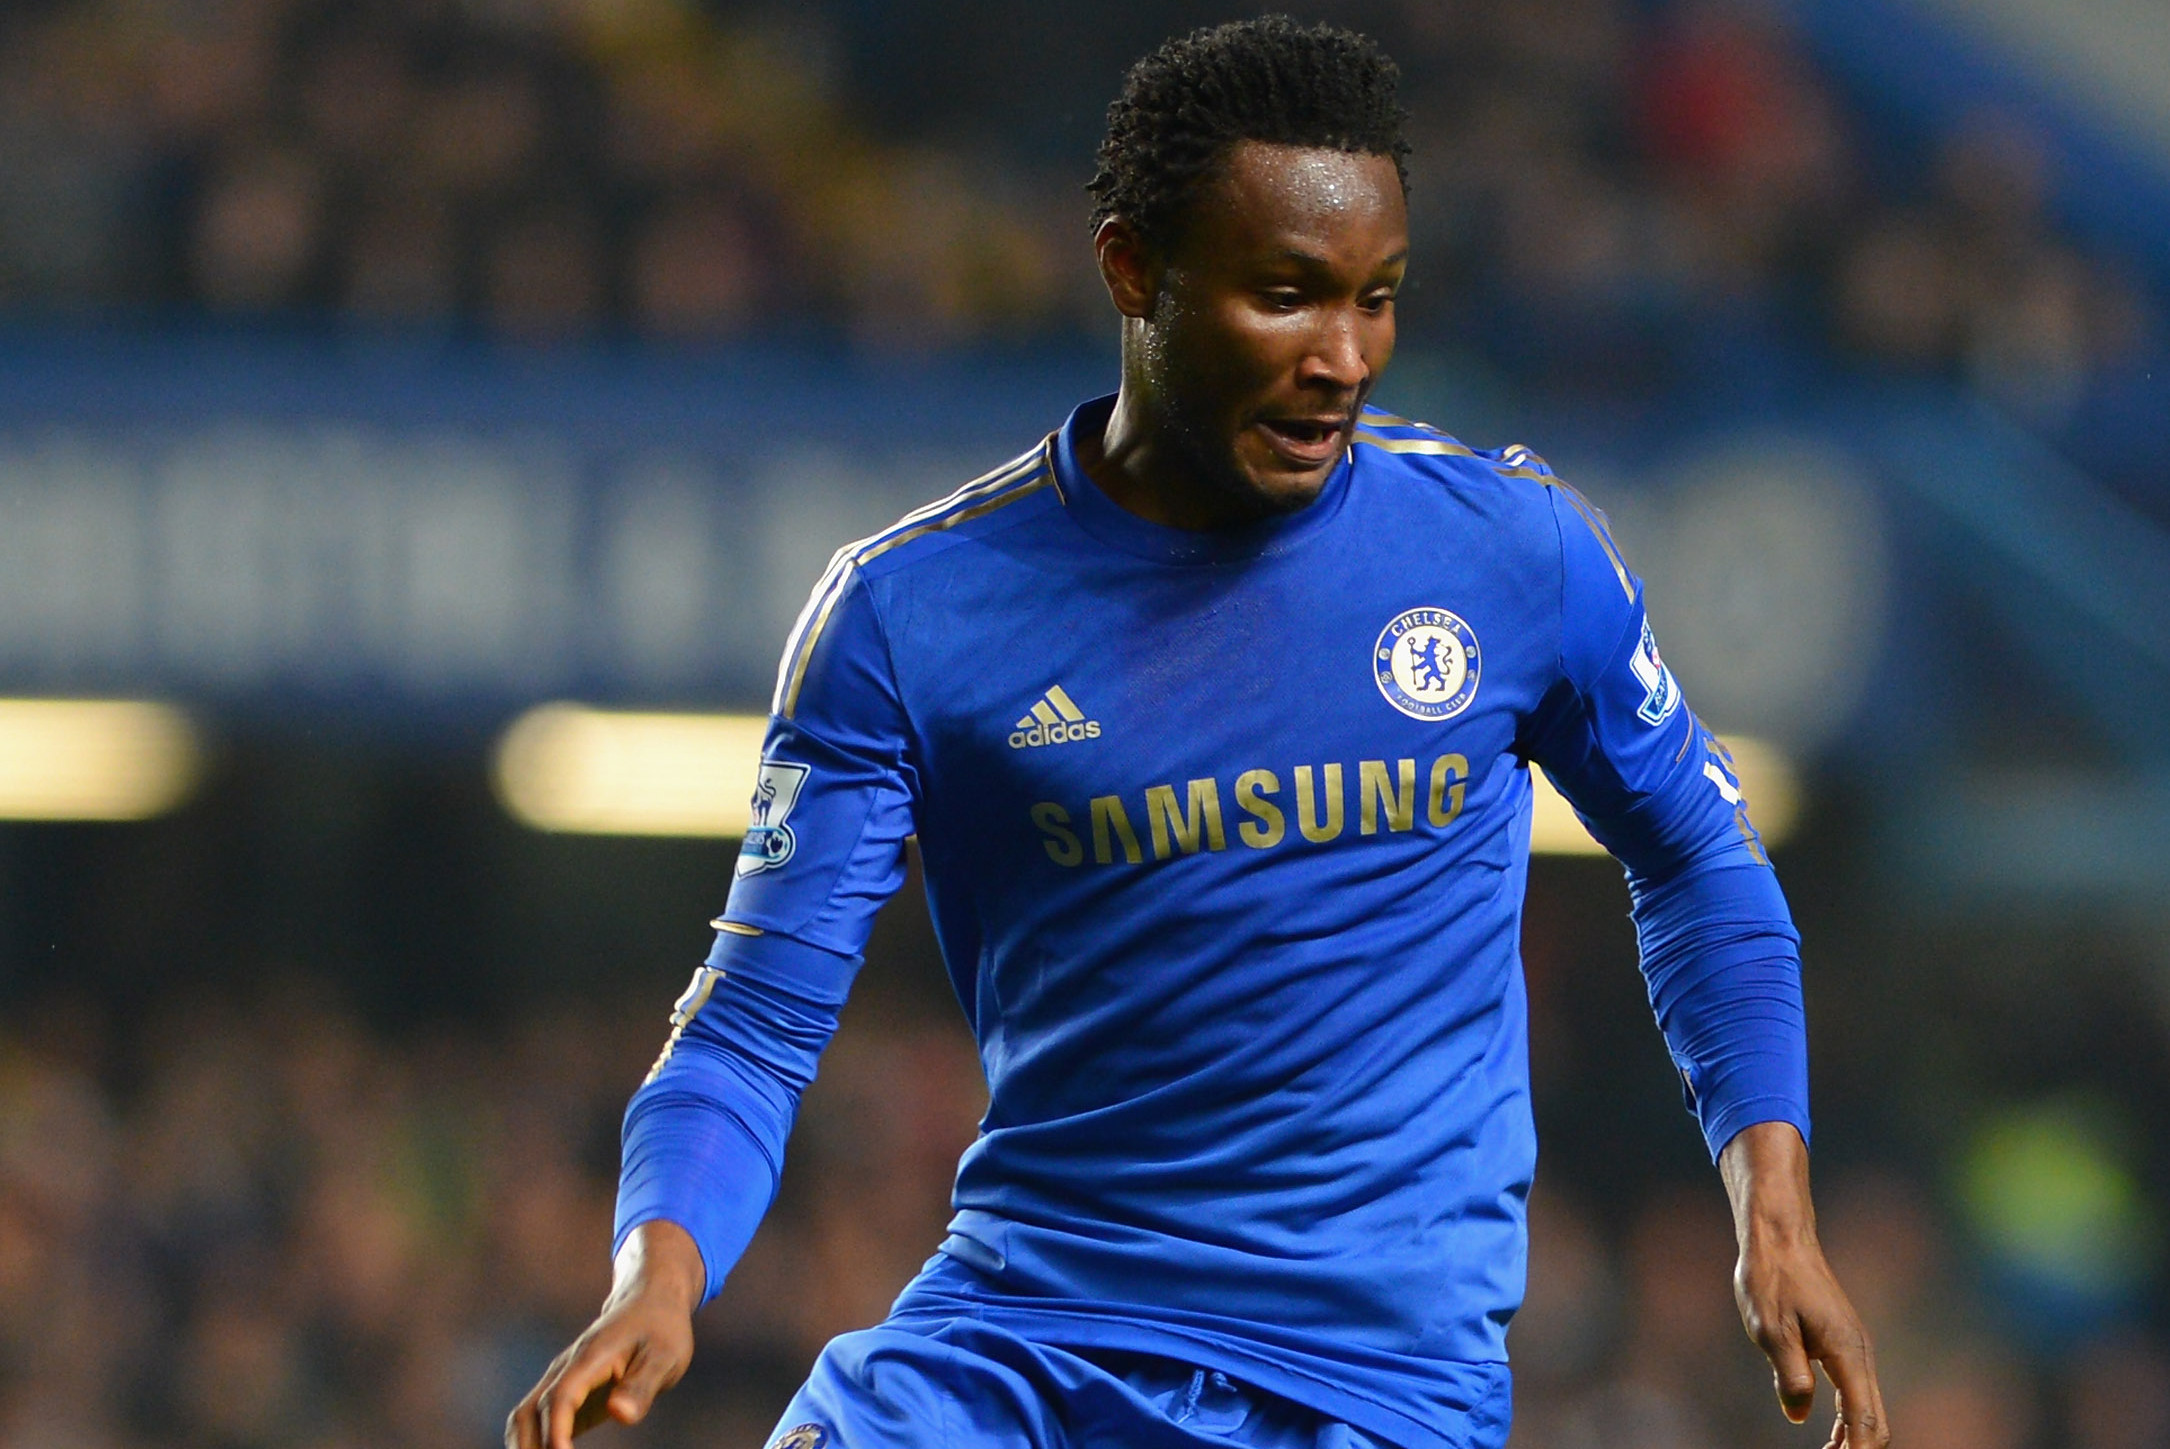 Mikel chelsea – Hijacked transfers